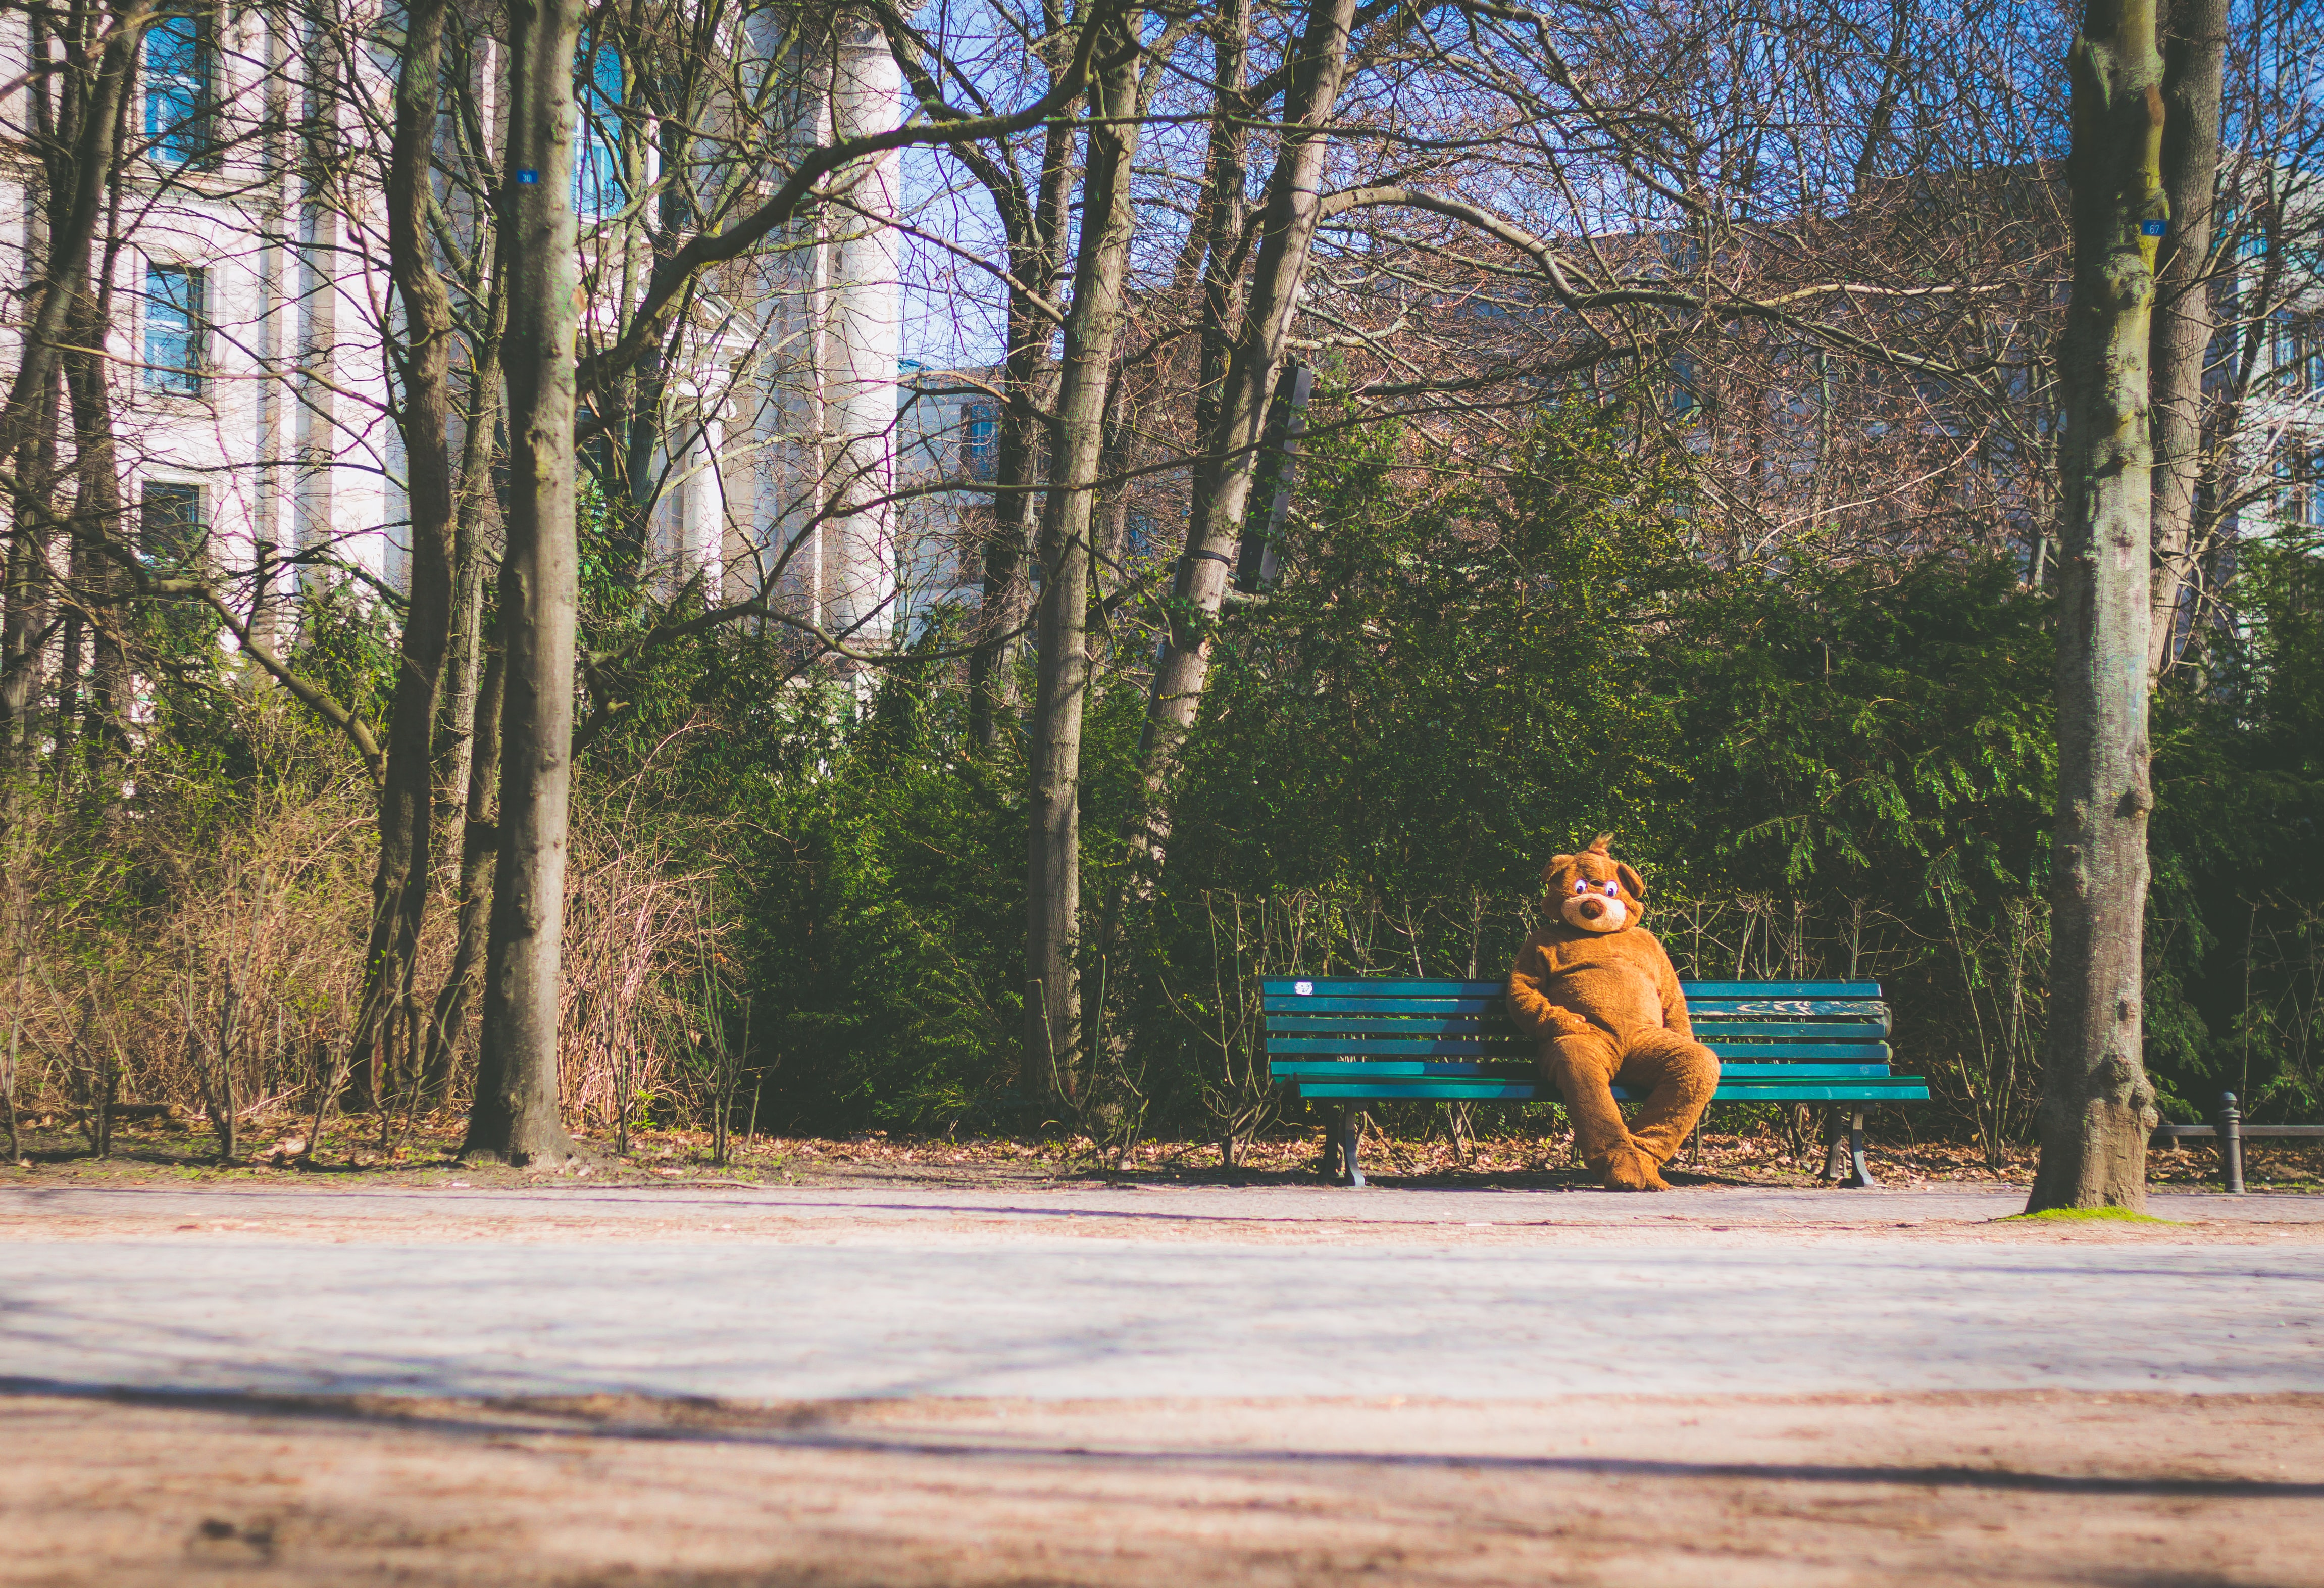 brown bear mascot sitting on teal wooden bench